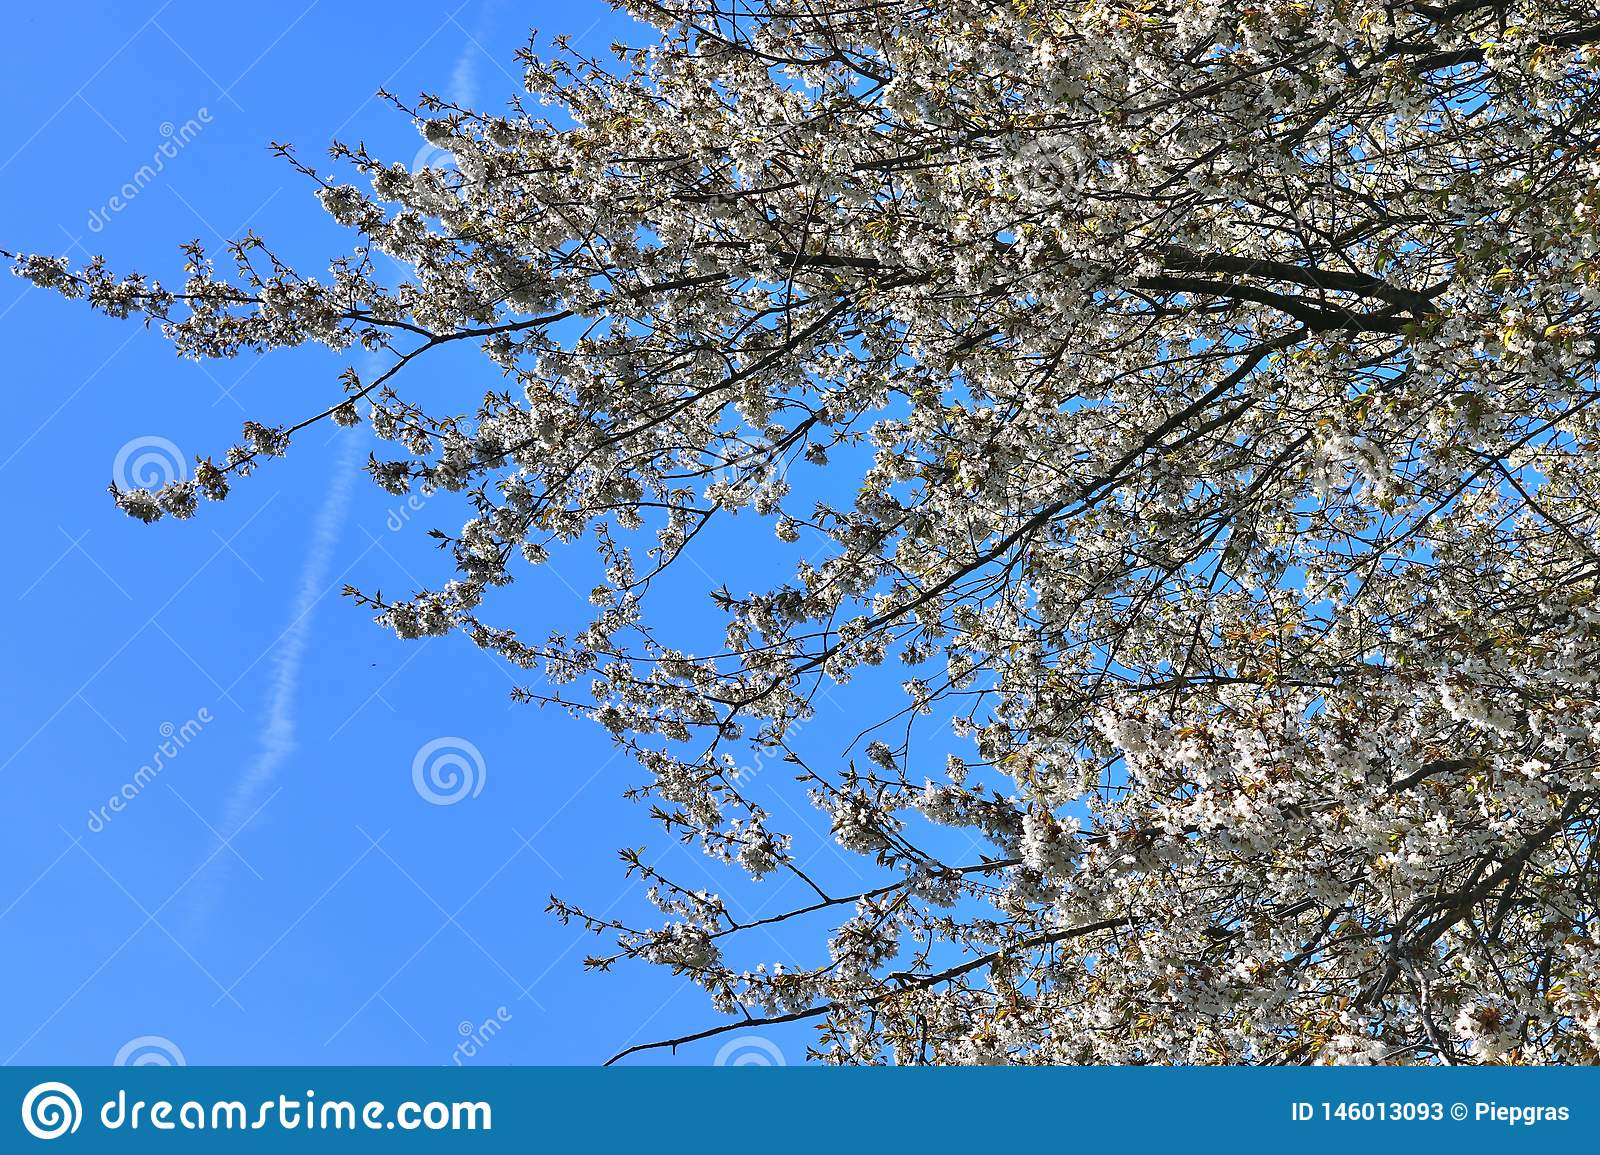 Beautiful red yellow and white blooming trees in front of a blue sky seen in germany